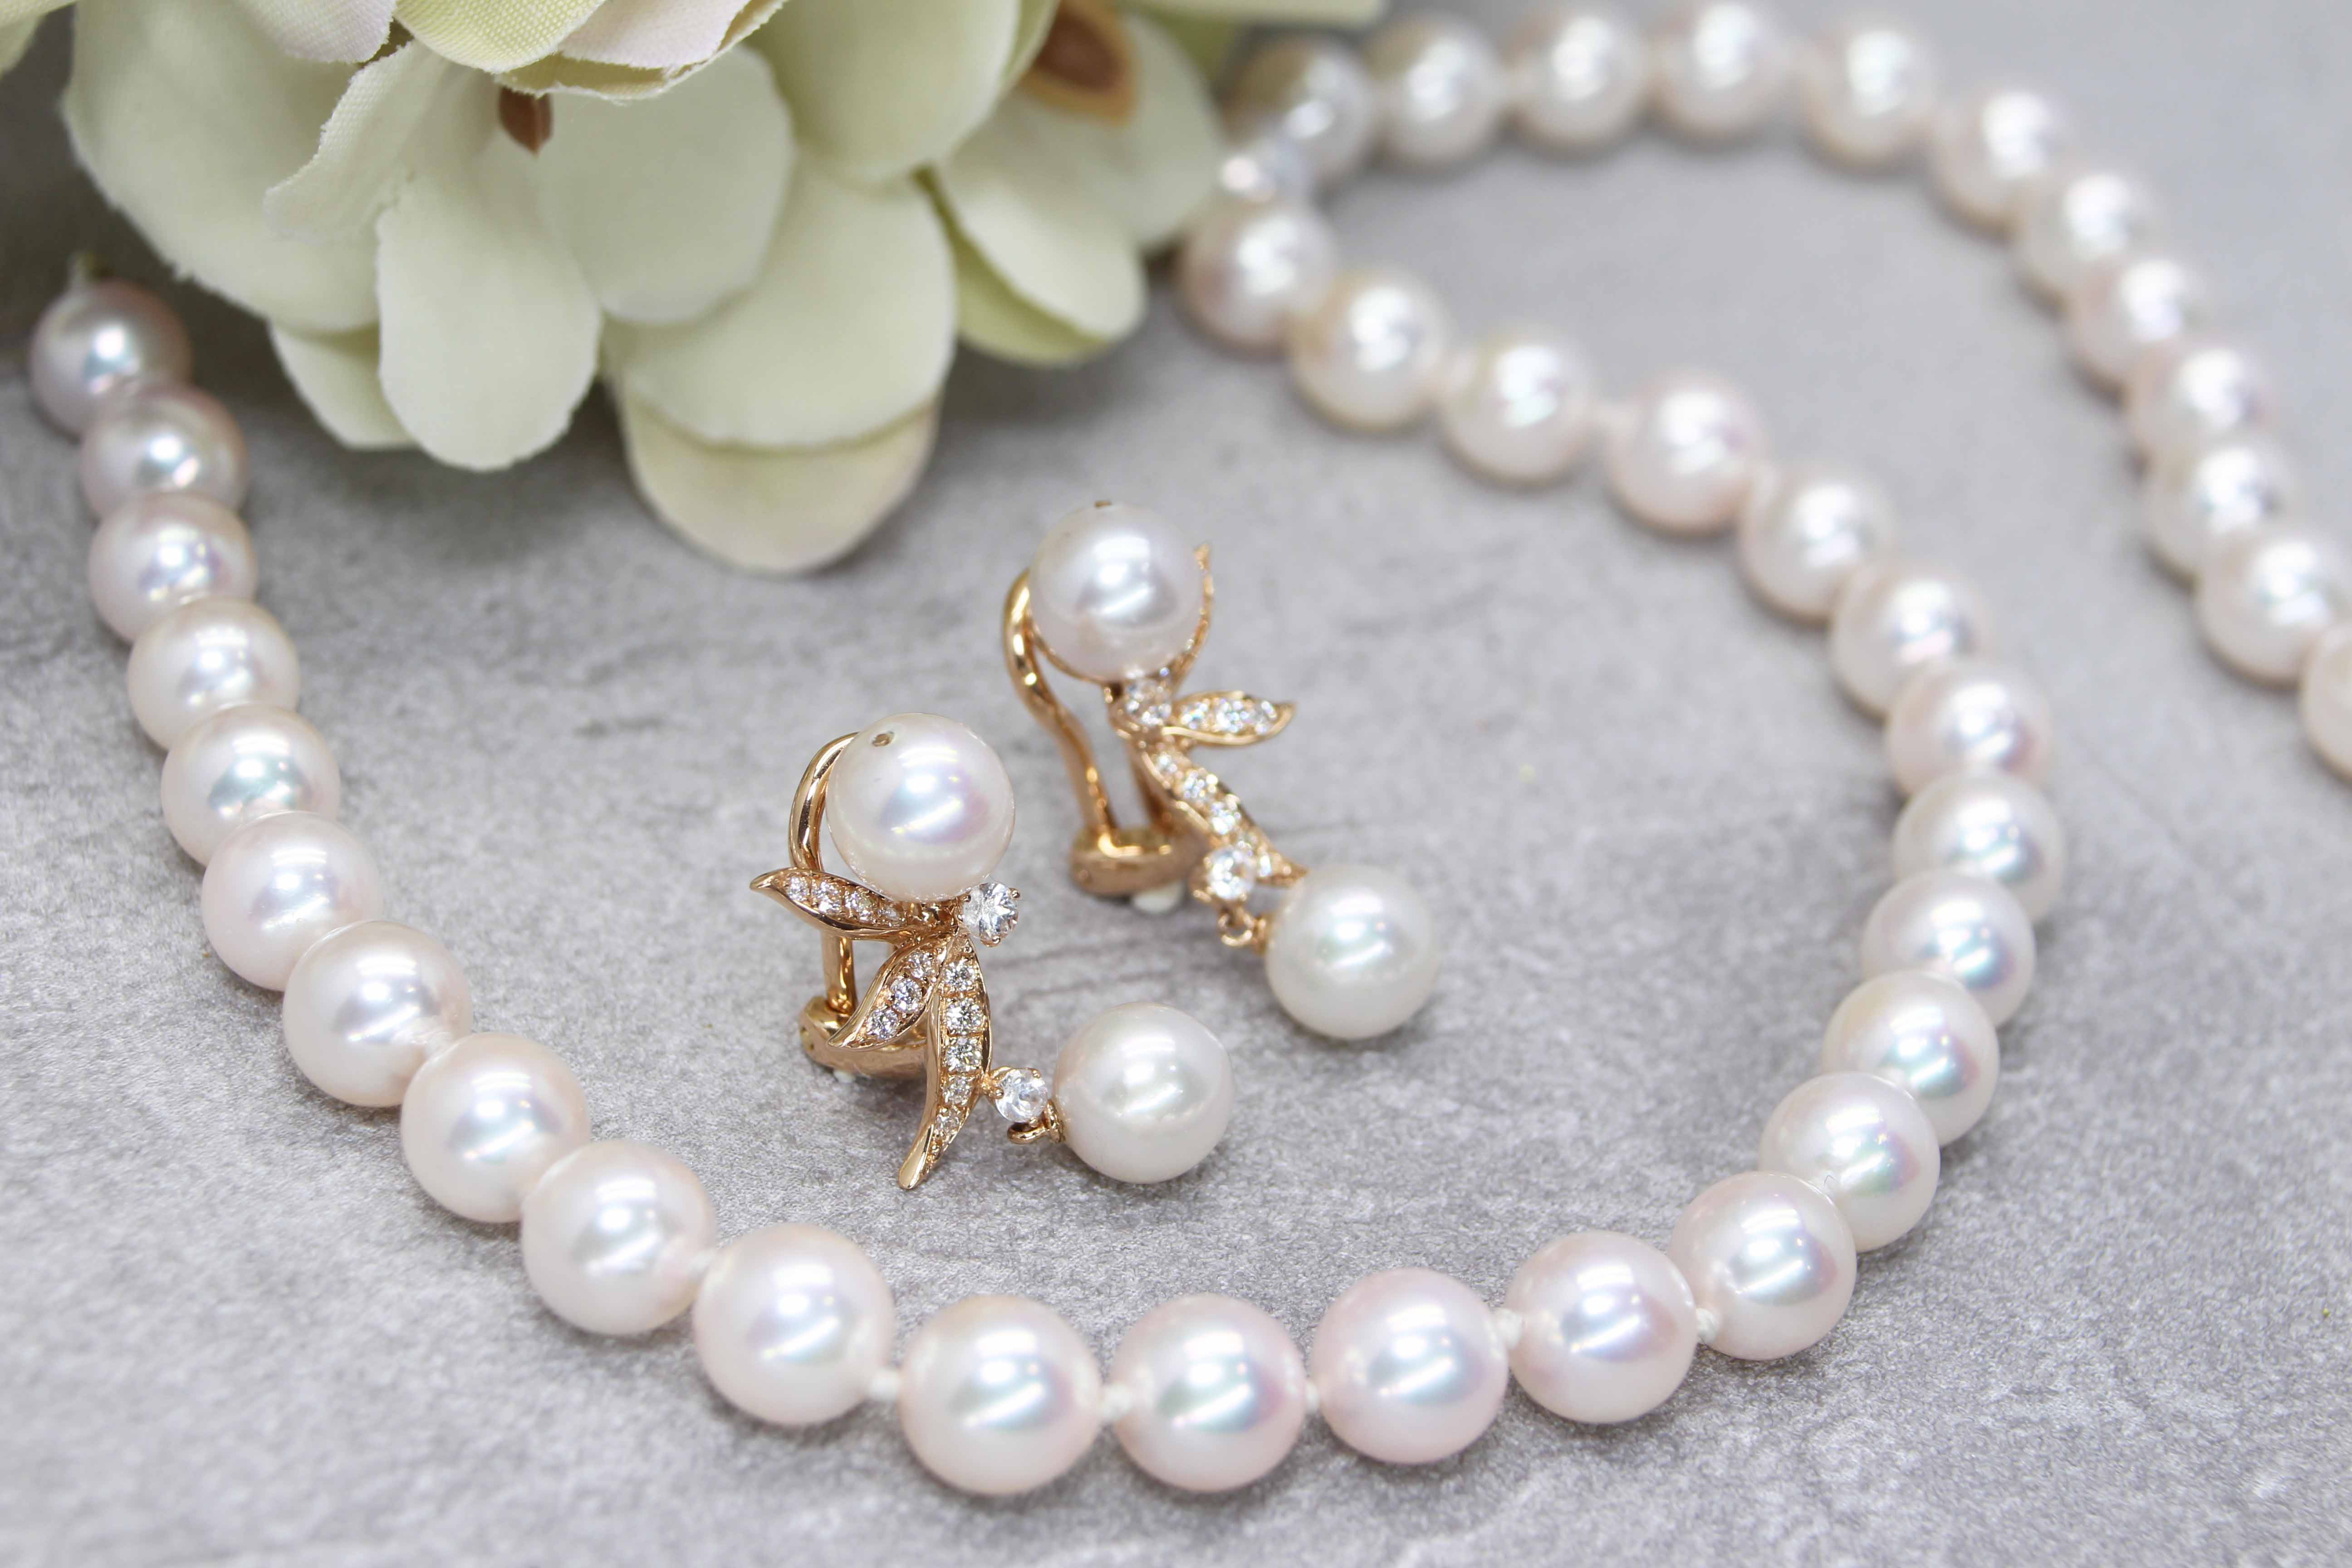 Customised Pearl Set Wedding Jewellery - Pearl Earring and Necklace customised to the wearer with akoya pearl   Lcoal Jewellery in Singapore customised wedding jewellery